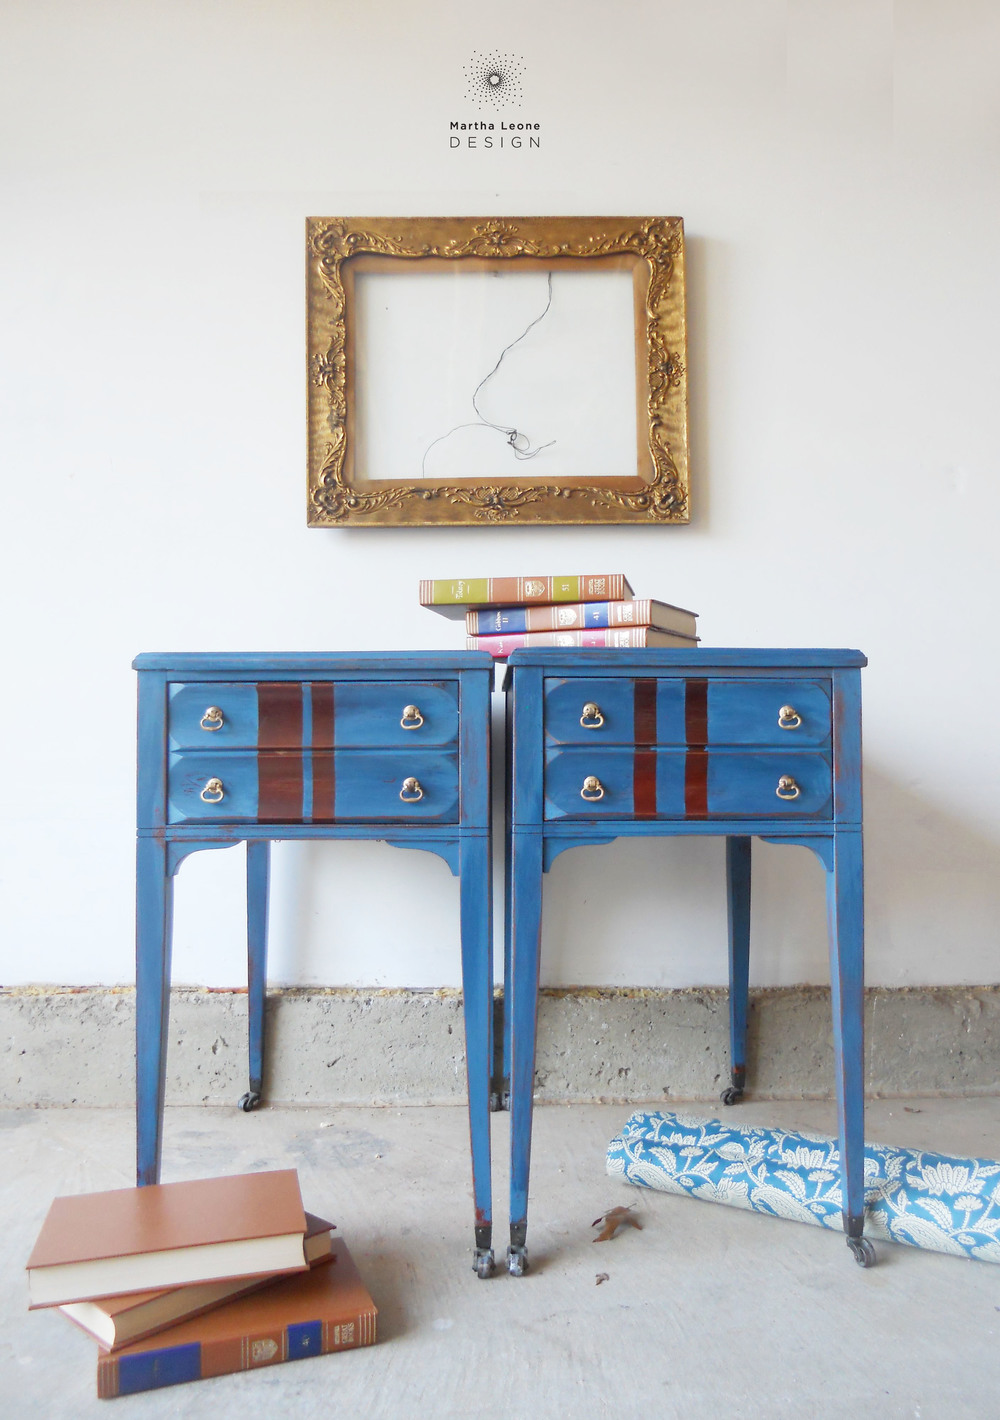 end-tables4-by-martha-leone-design.jpg